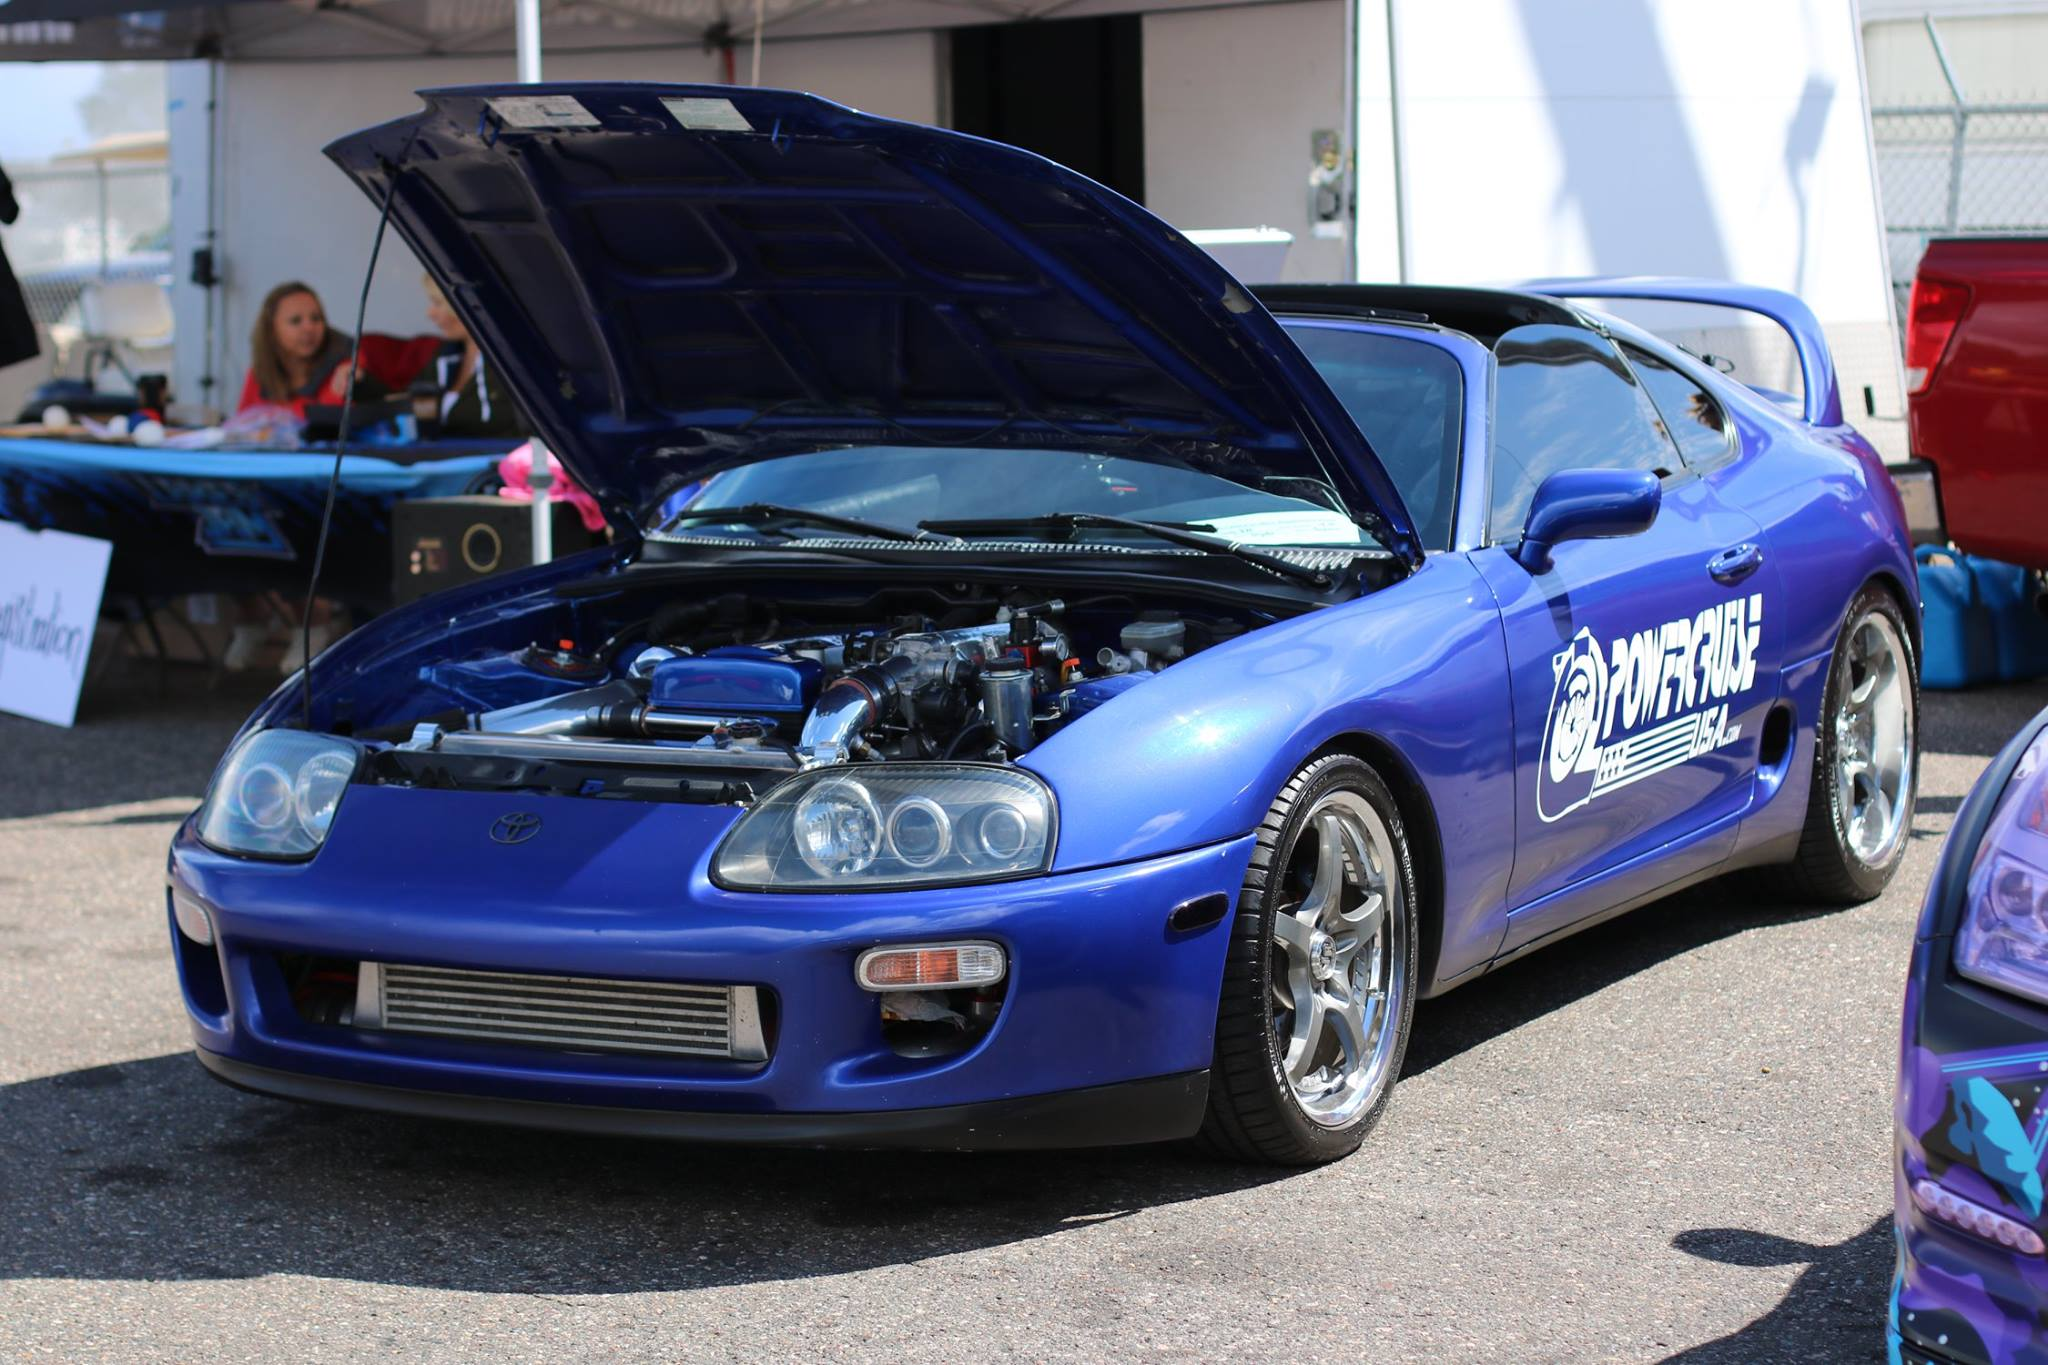 01 Greg Yde 1995 Toyota Supra Tuner Battlegrounds